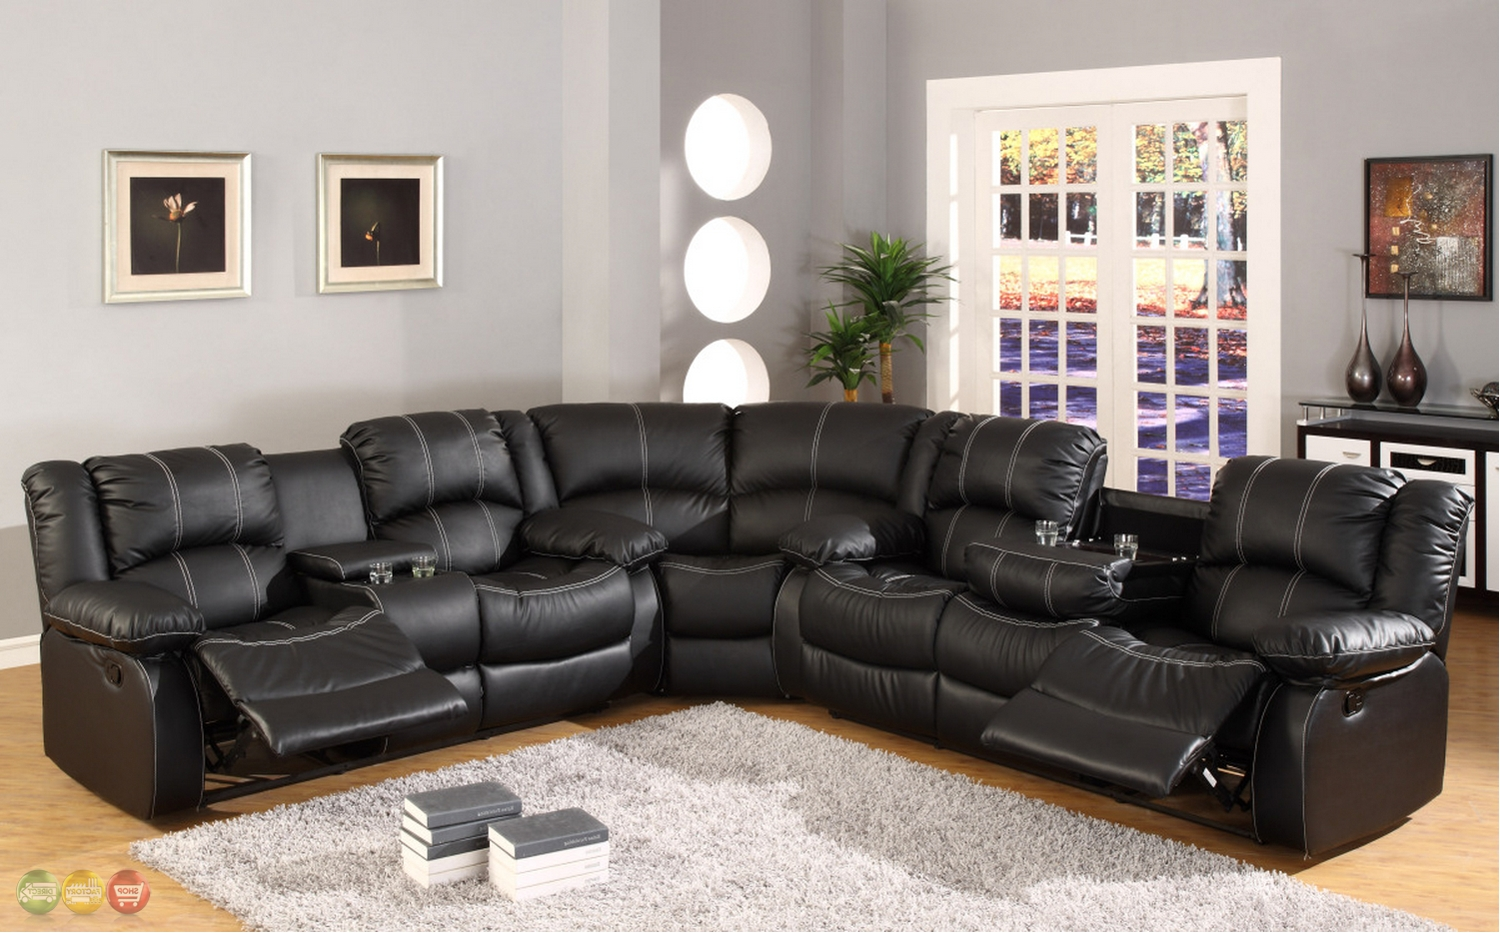 2018 Latest Motion Sectional Sofas